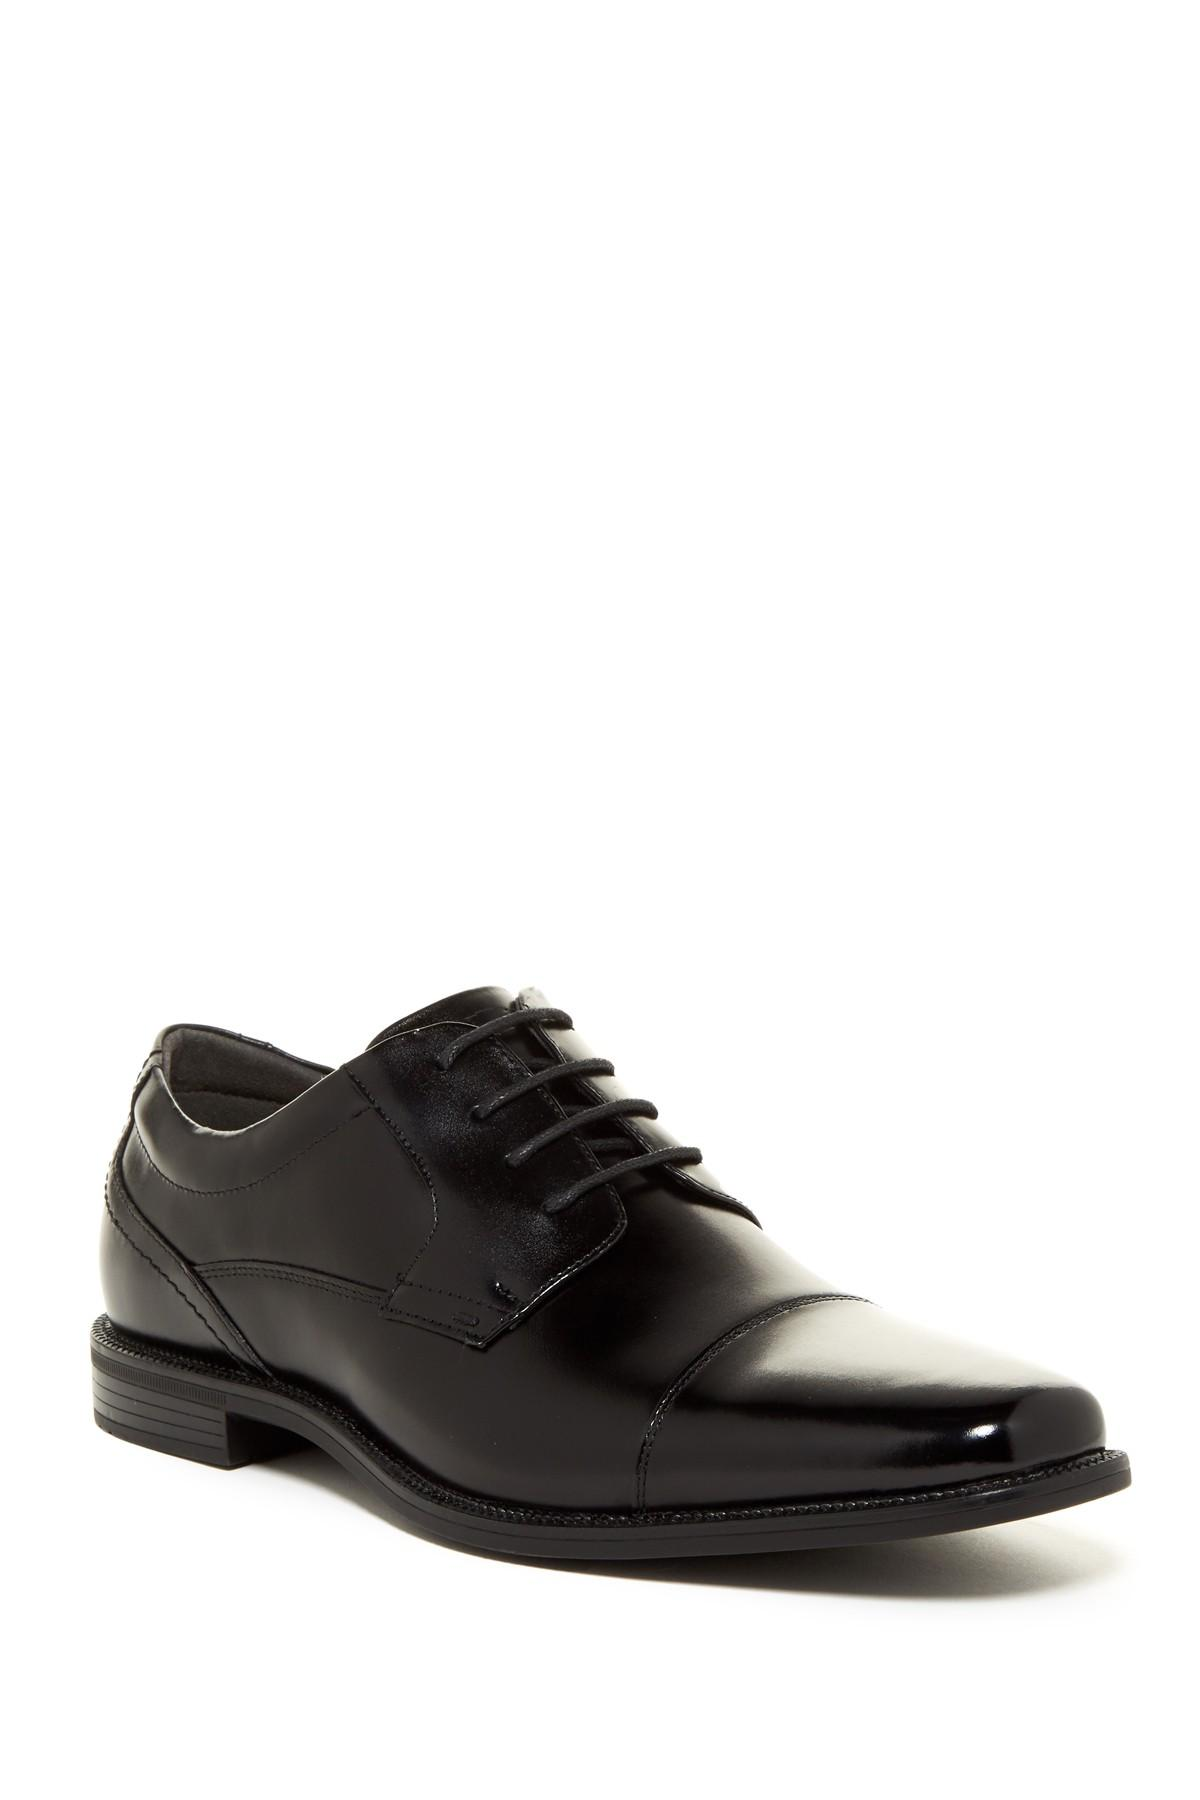 Nordstrom Rack Womens Oxford Shoes